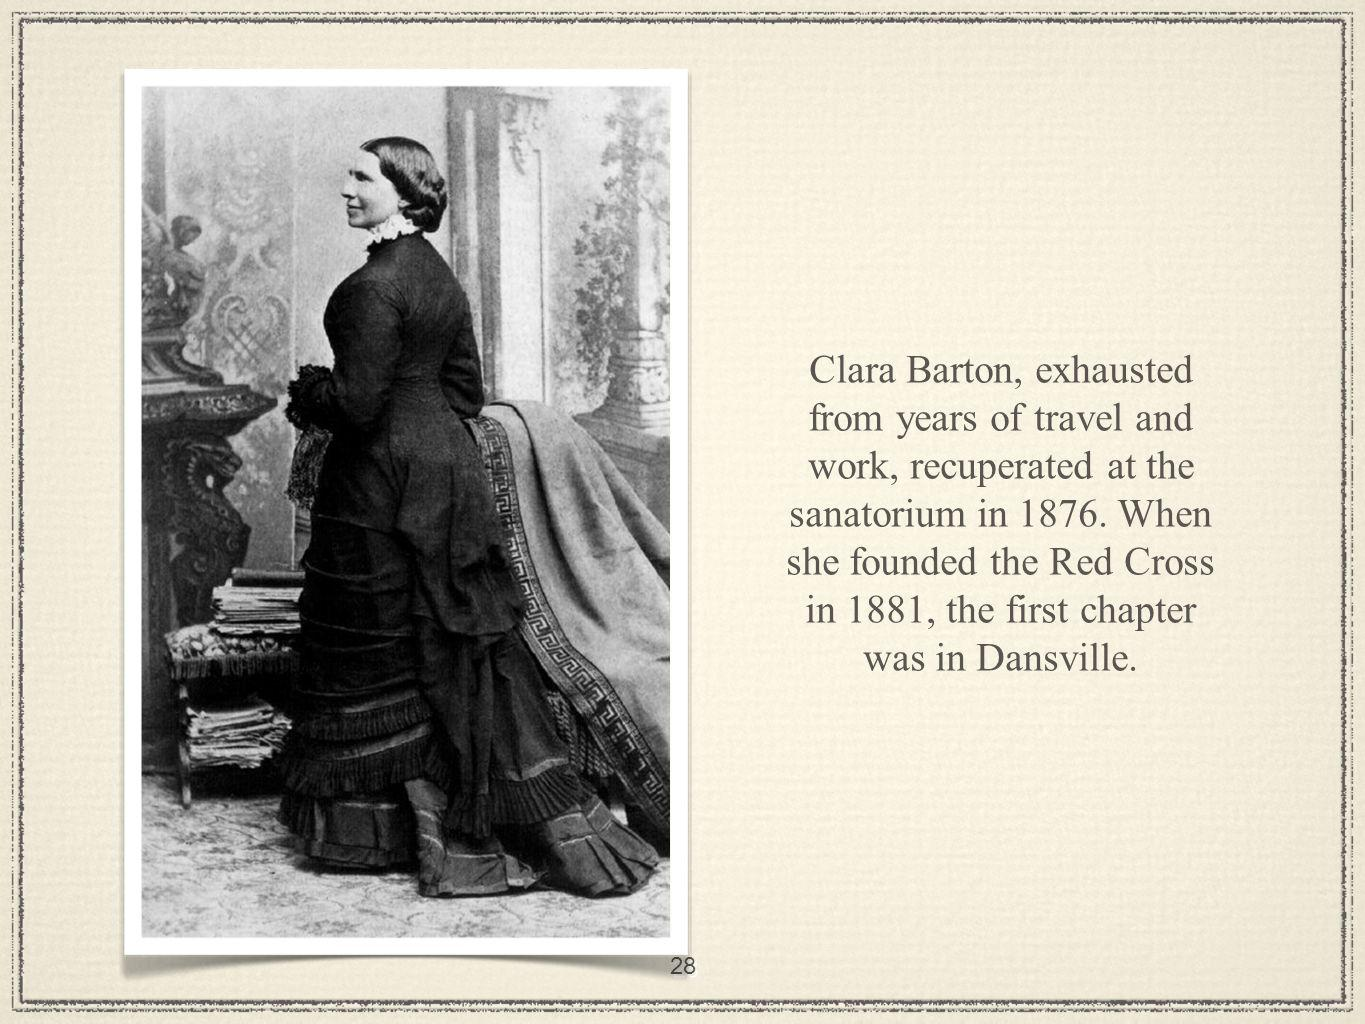 28 Clara Barton, exhausted from years of travel and work, recuperated at the sanatorium in 1876.